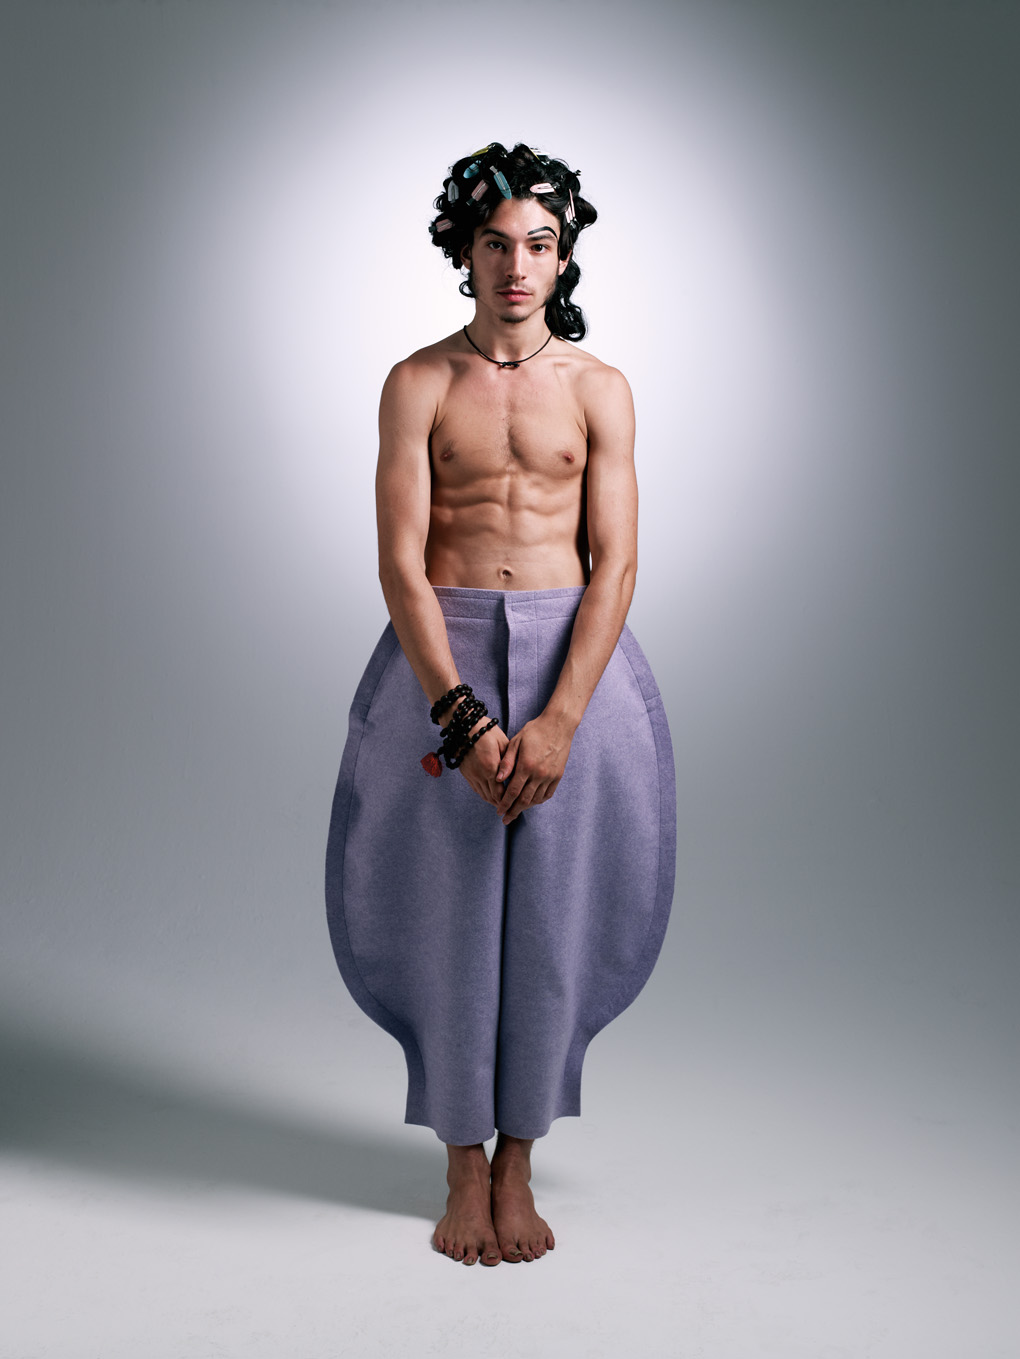 Ezra Miller Male Revelation of the YearEzra Miller